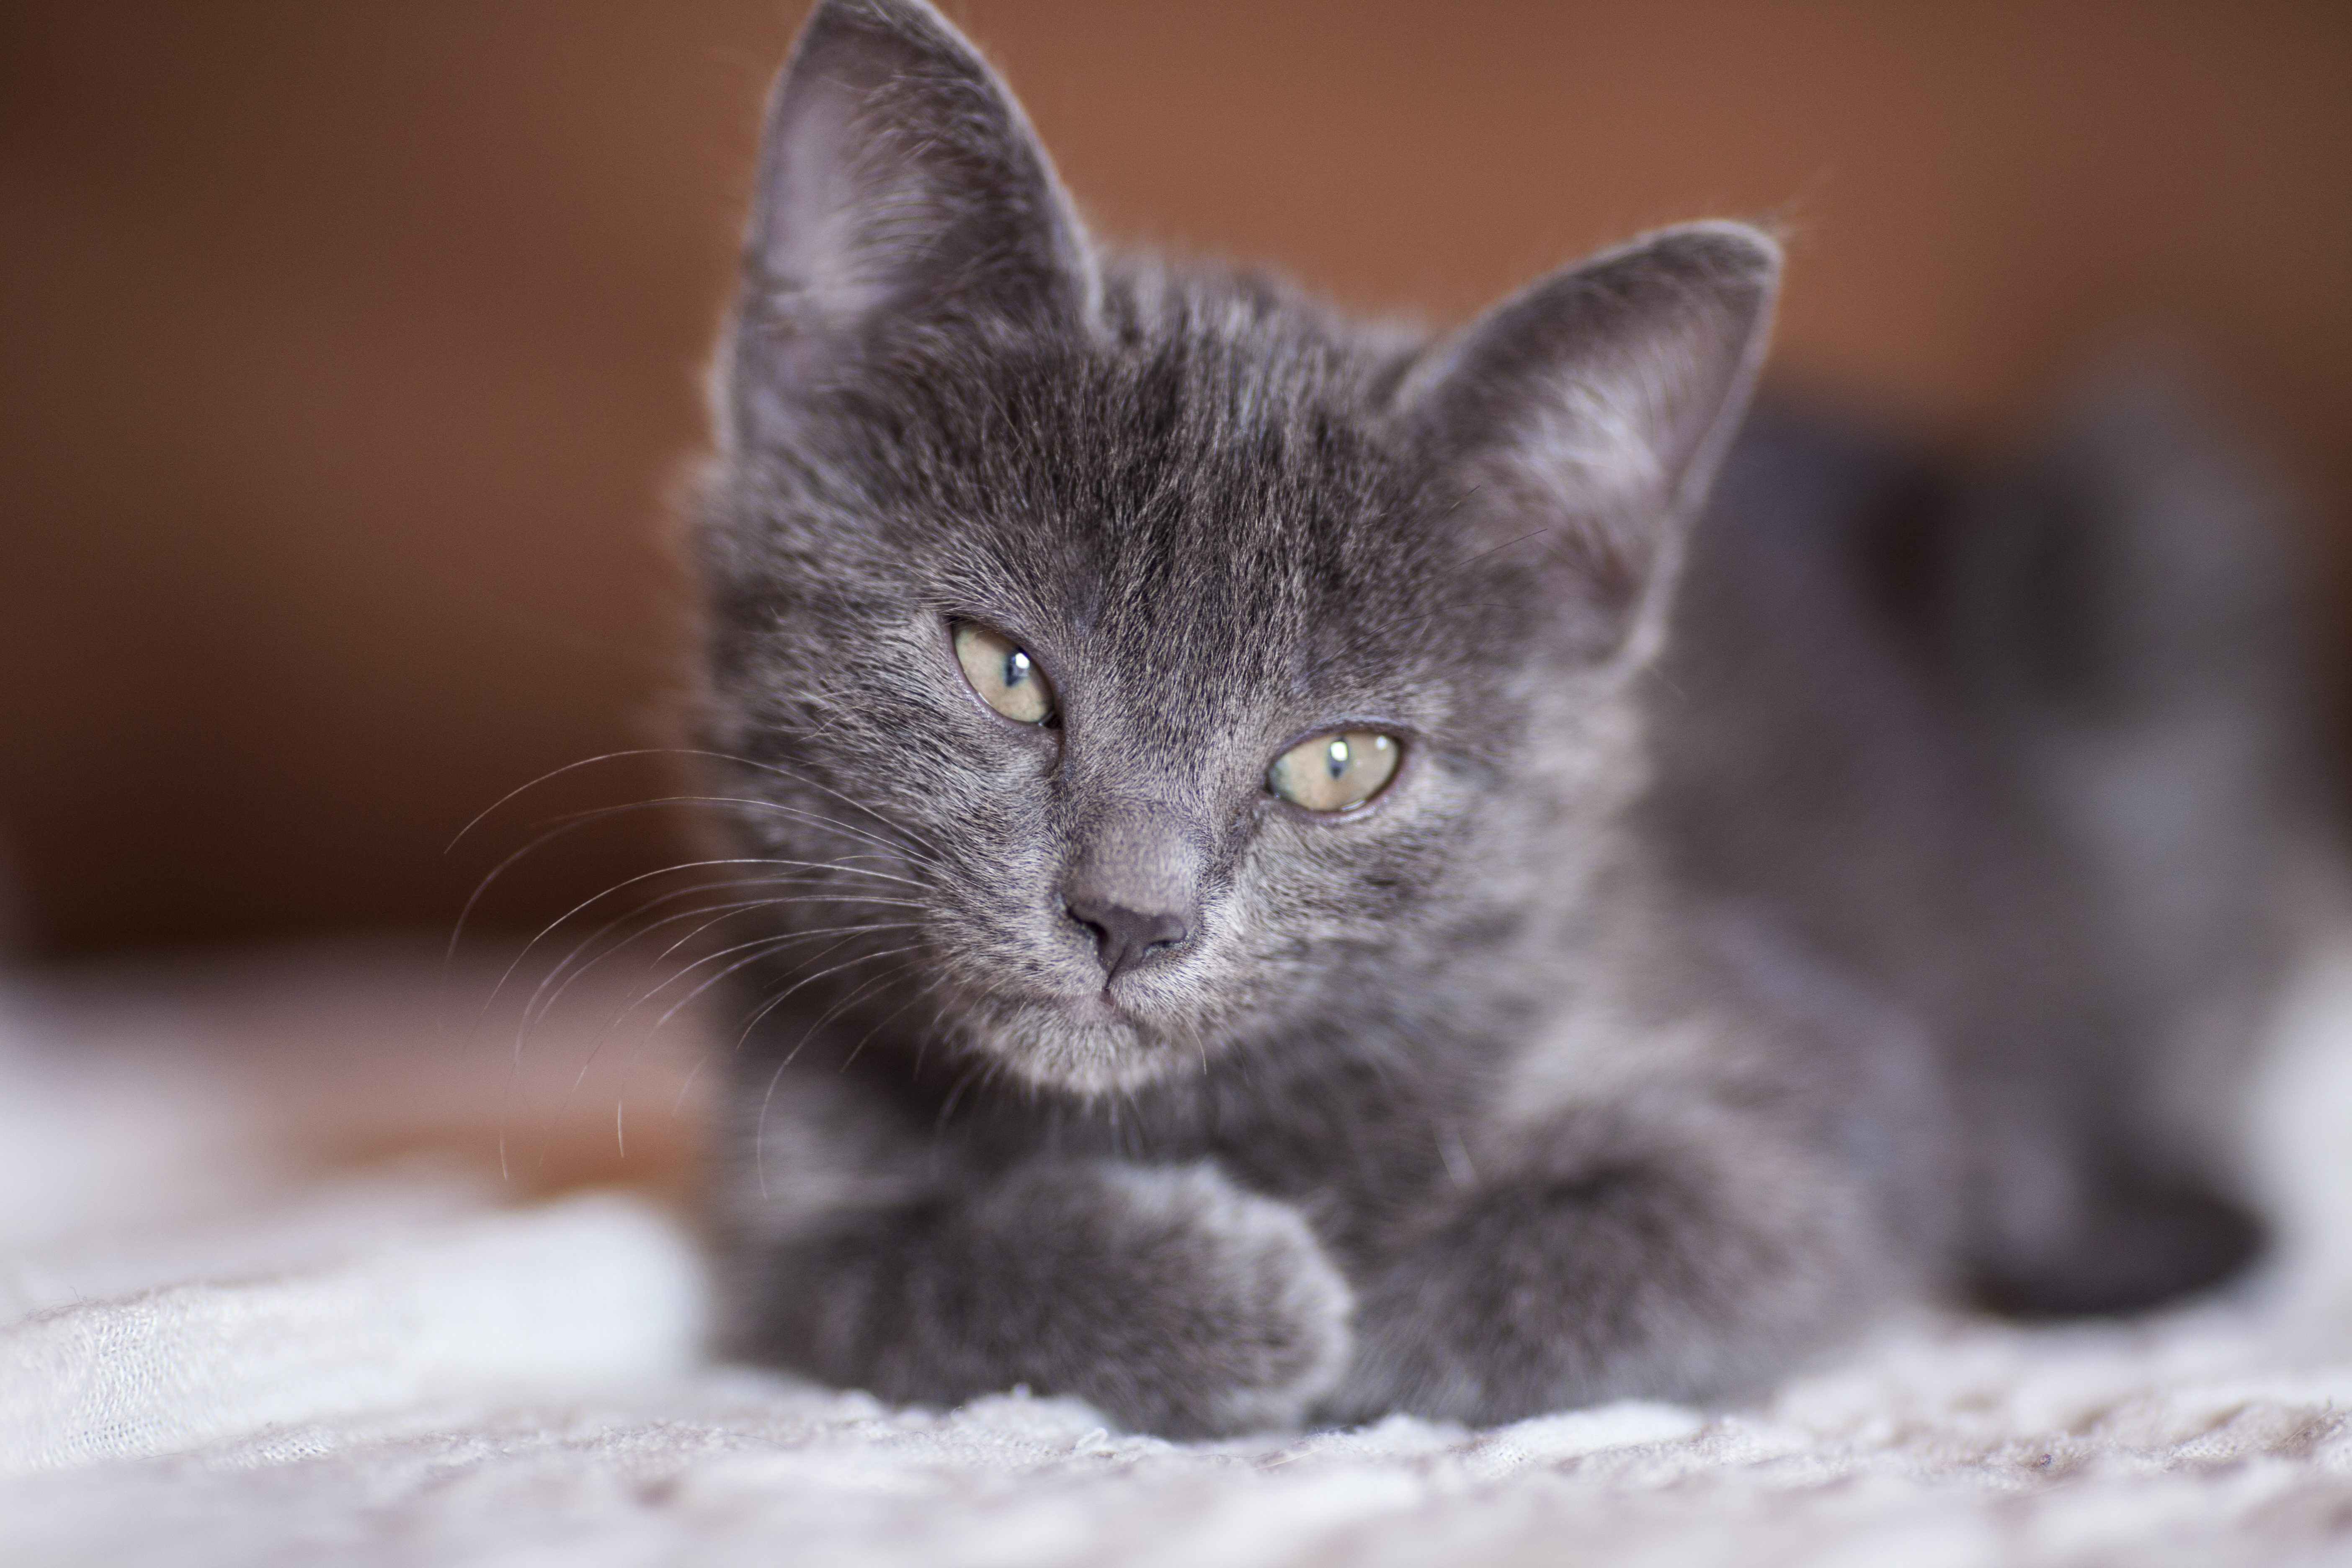 Cute Pet Animals Wallpapers Russian Blue Cat 183 Free Stock Photo